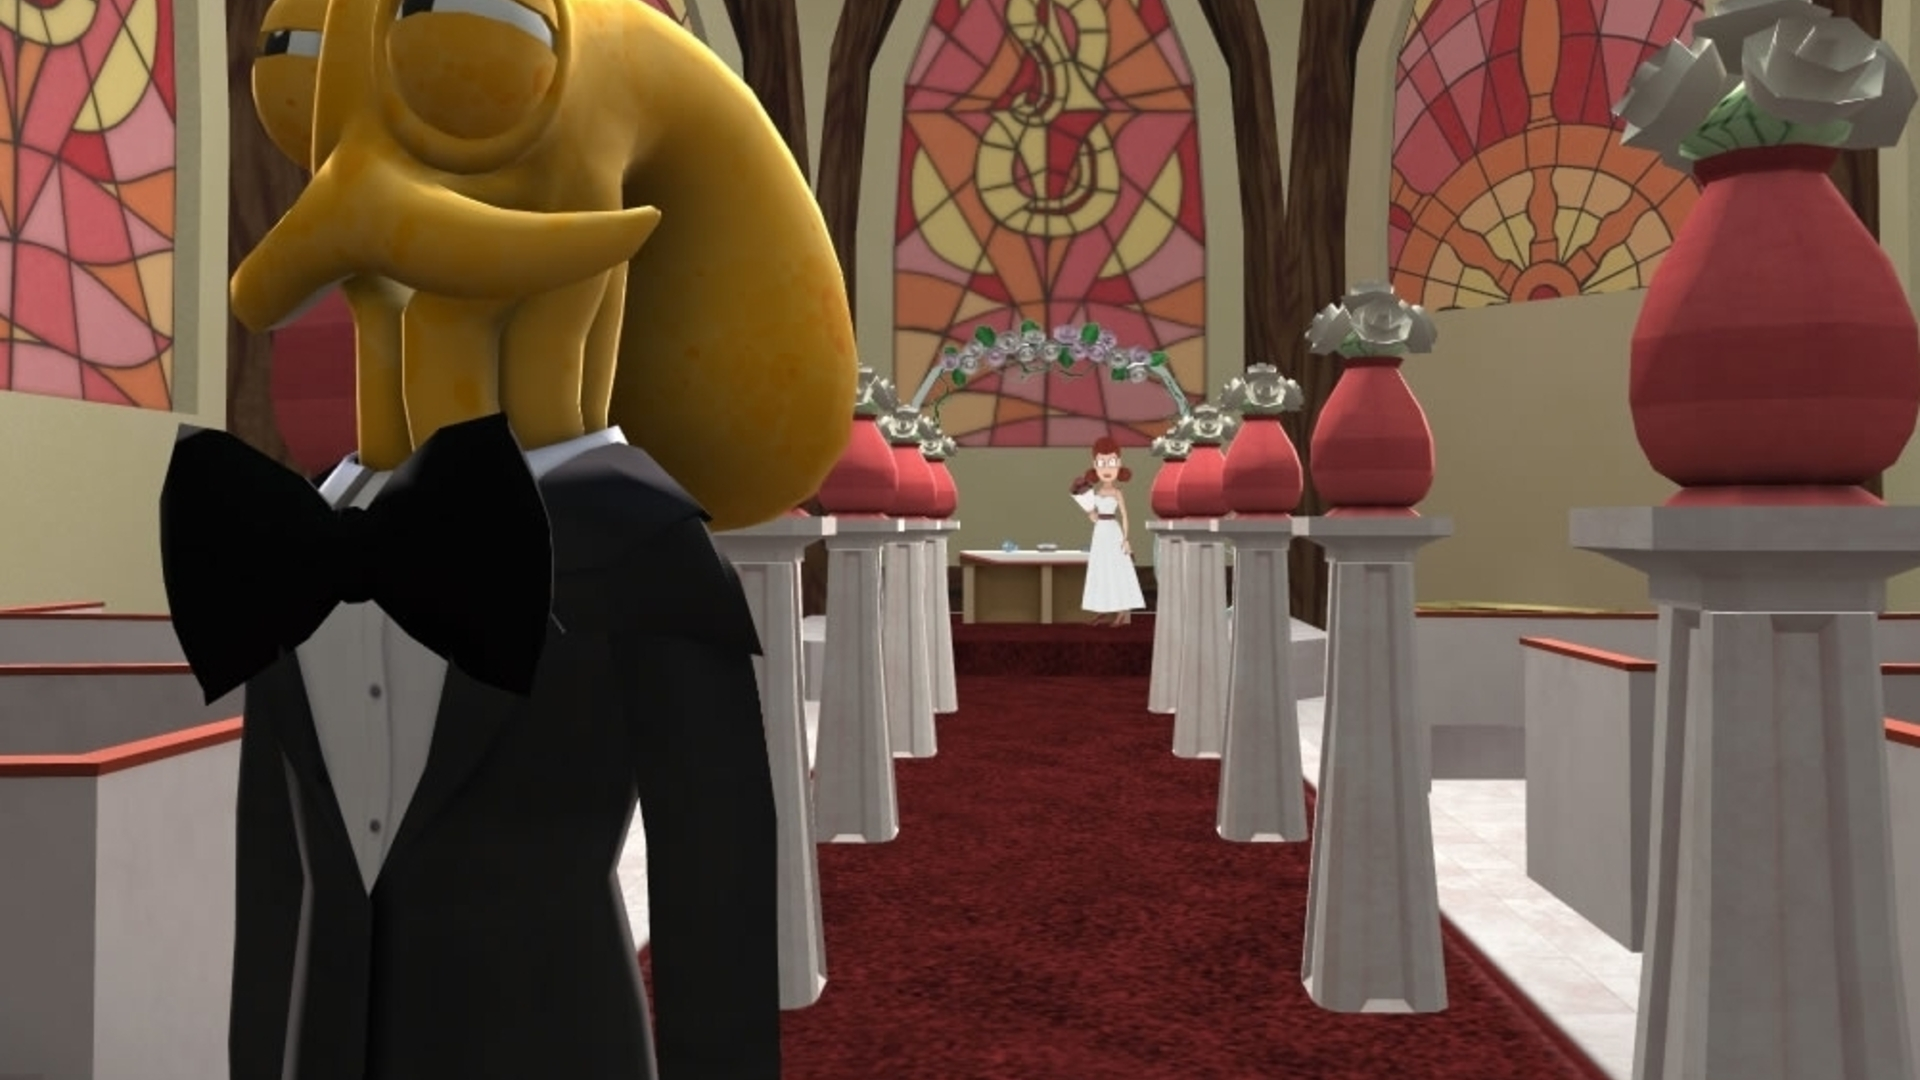 Eight arms to hold you: Getting hitched in Octodad: The Dadliest Catch